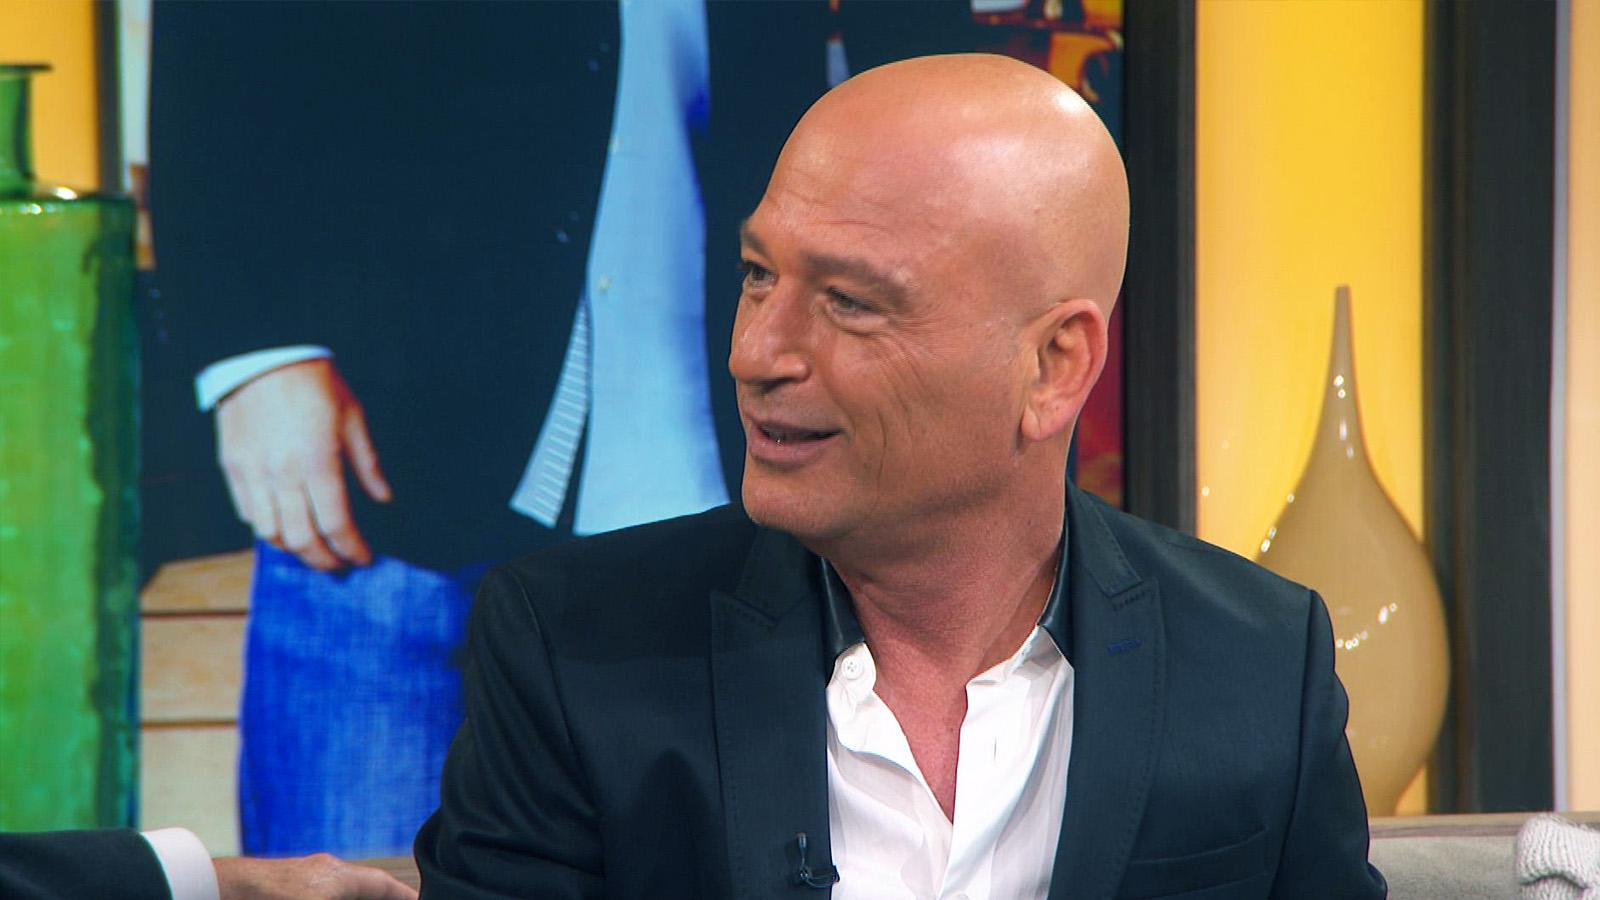 Howie Mandel On The Other Side Of Simon Cowell: 'He's Very Funny'